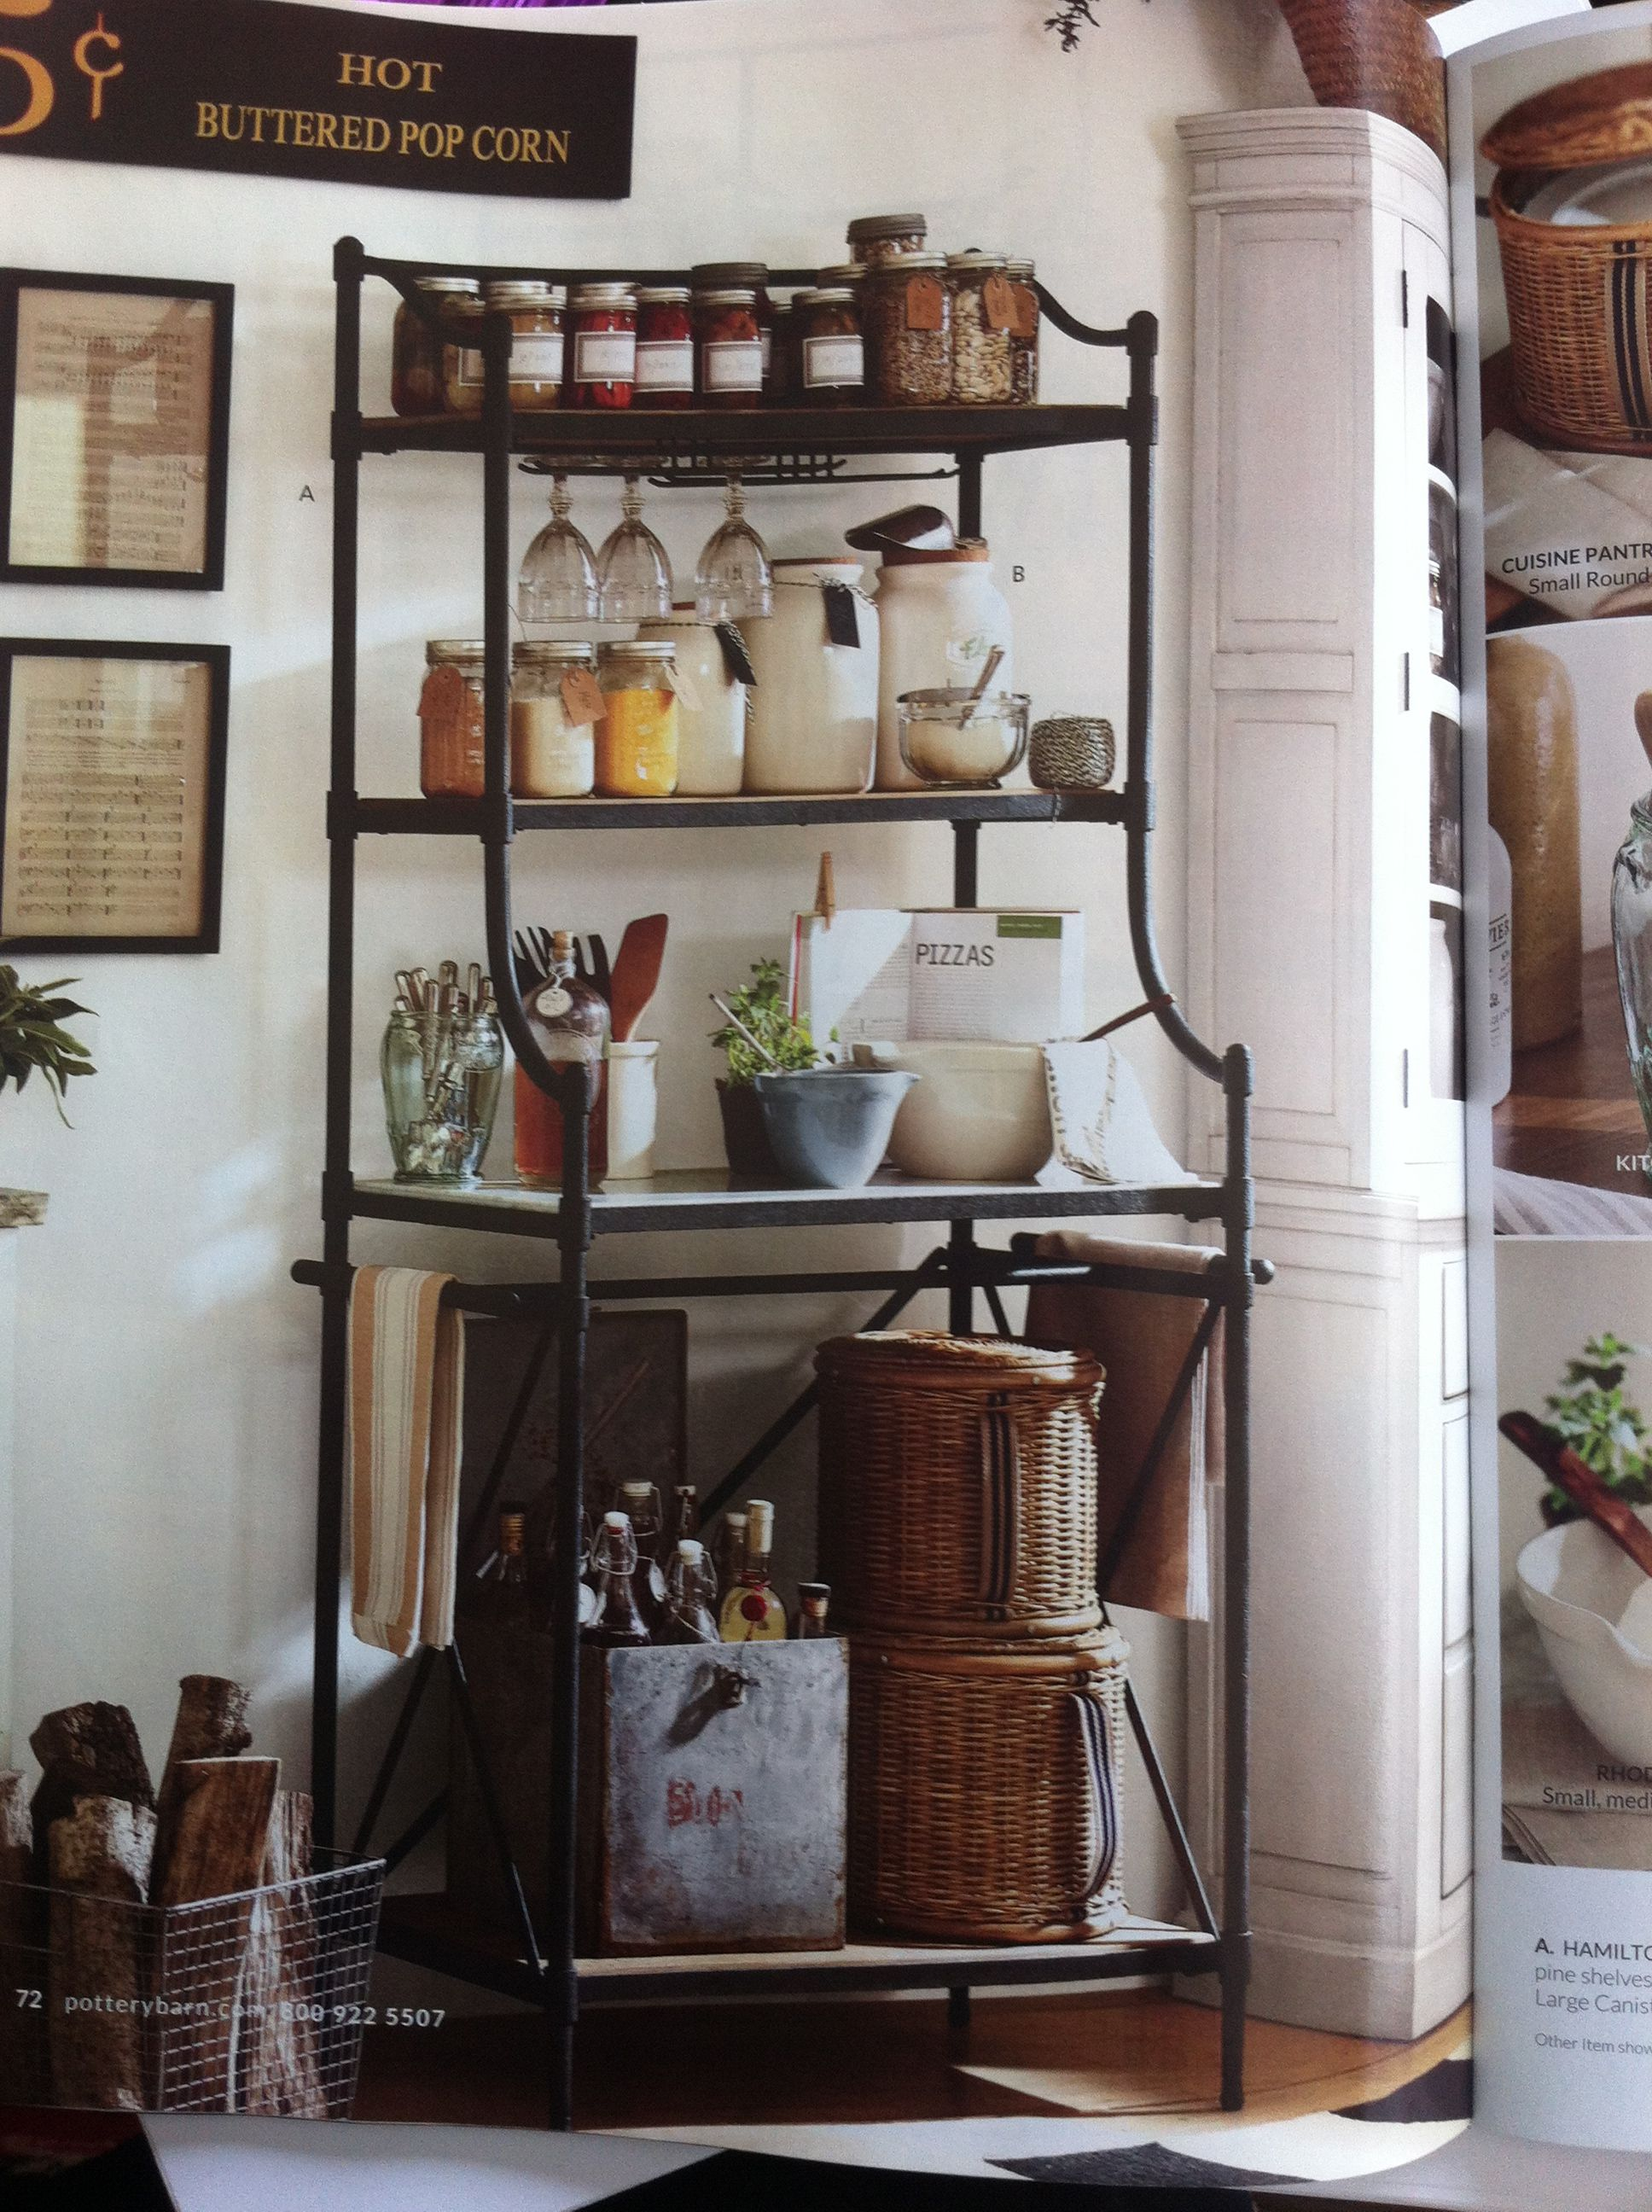 Pottery barn bakers rack | Cottage kitchens, Pottery barn ...